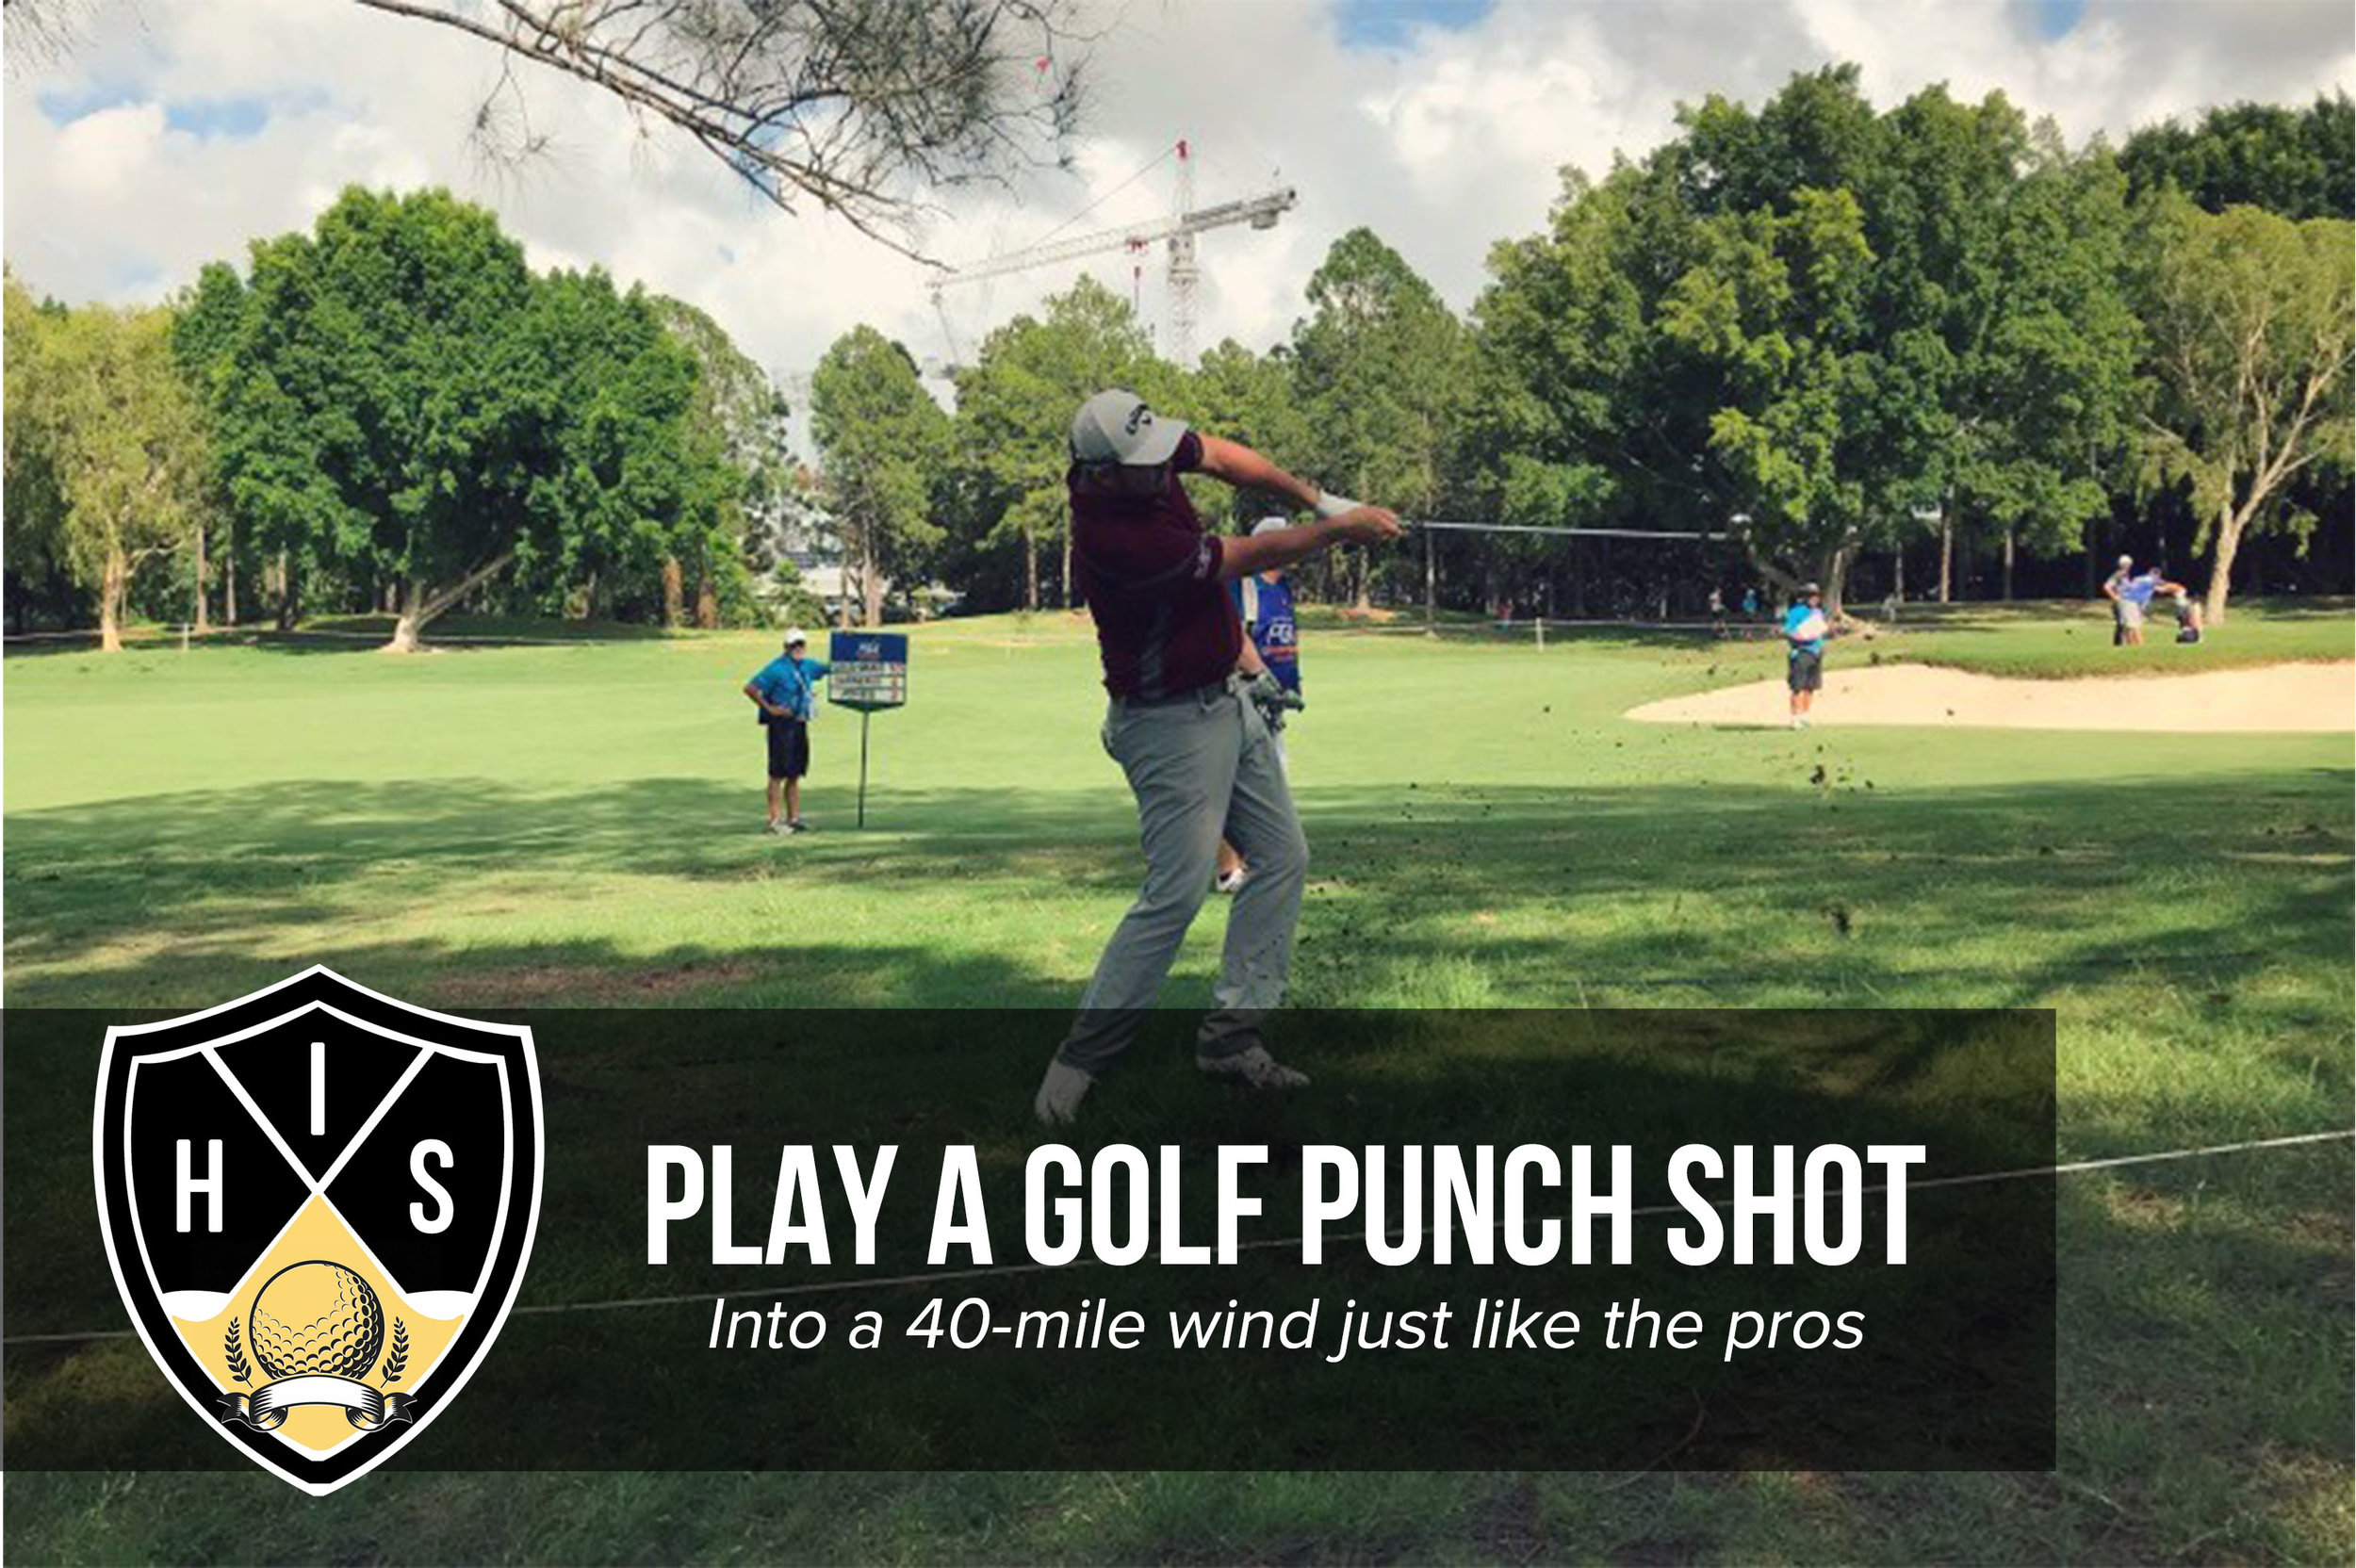 Golf Punch Shot